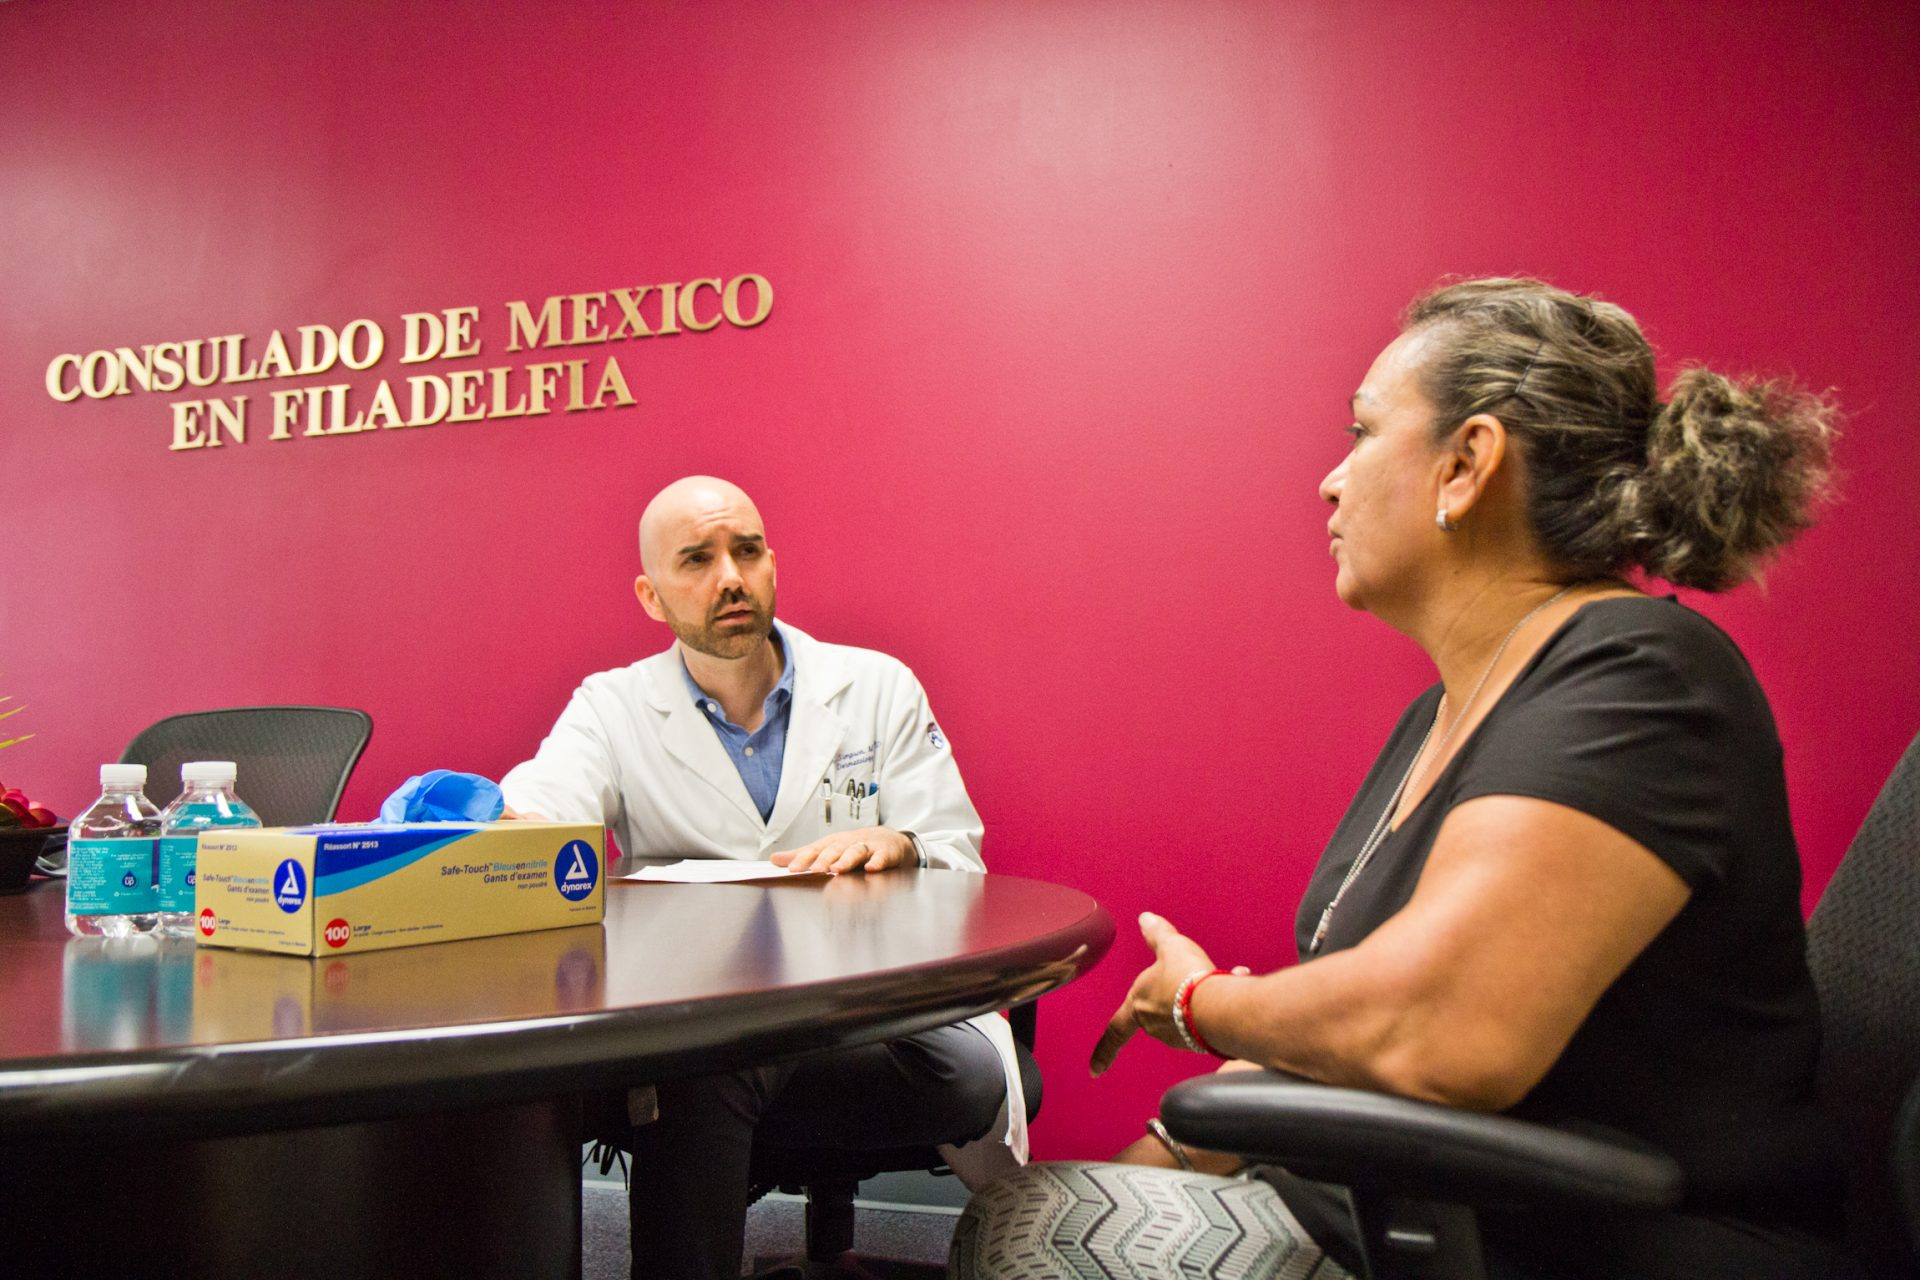 Dr. Corey Simpson, dermatologist, screens Diocelina Zabalo for skin cancer at Philadelphia's Mexican consulate.